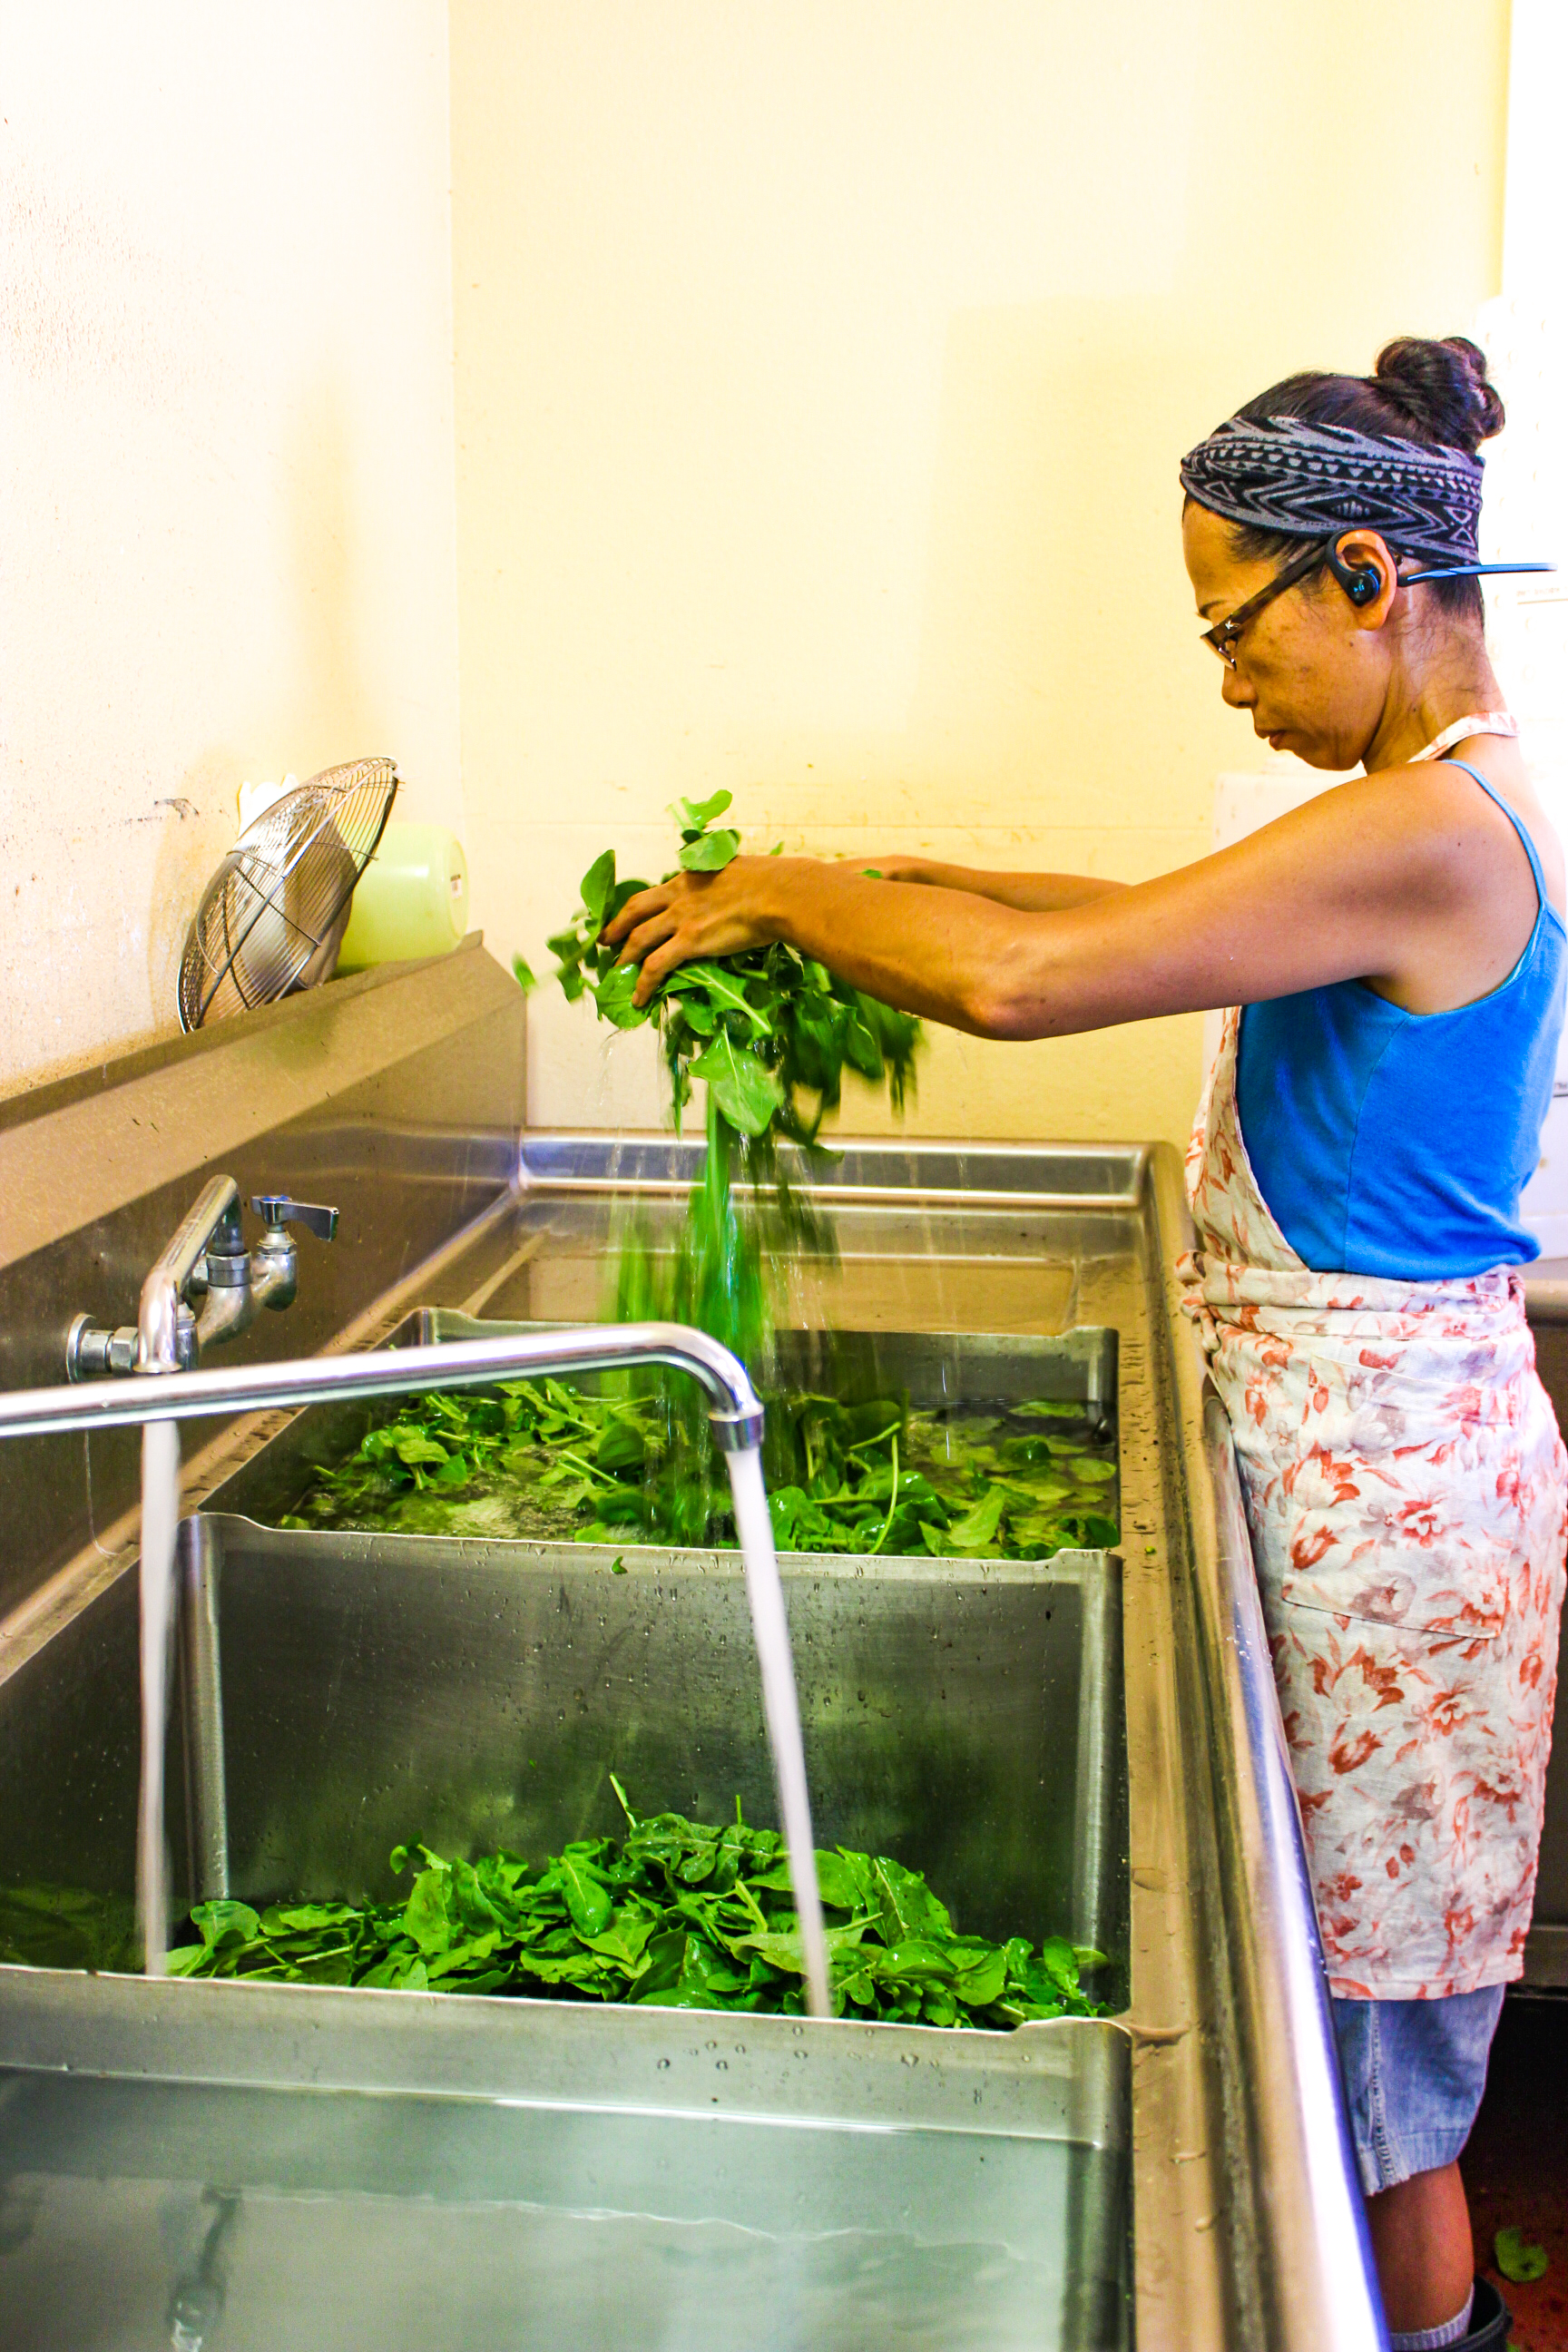 Kiyoko inspecting and washing arugula in the certified farm kitchen.